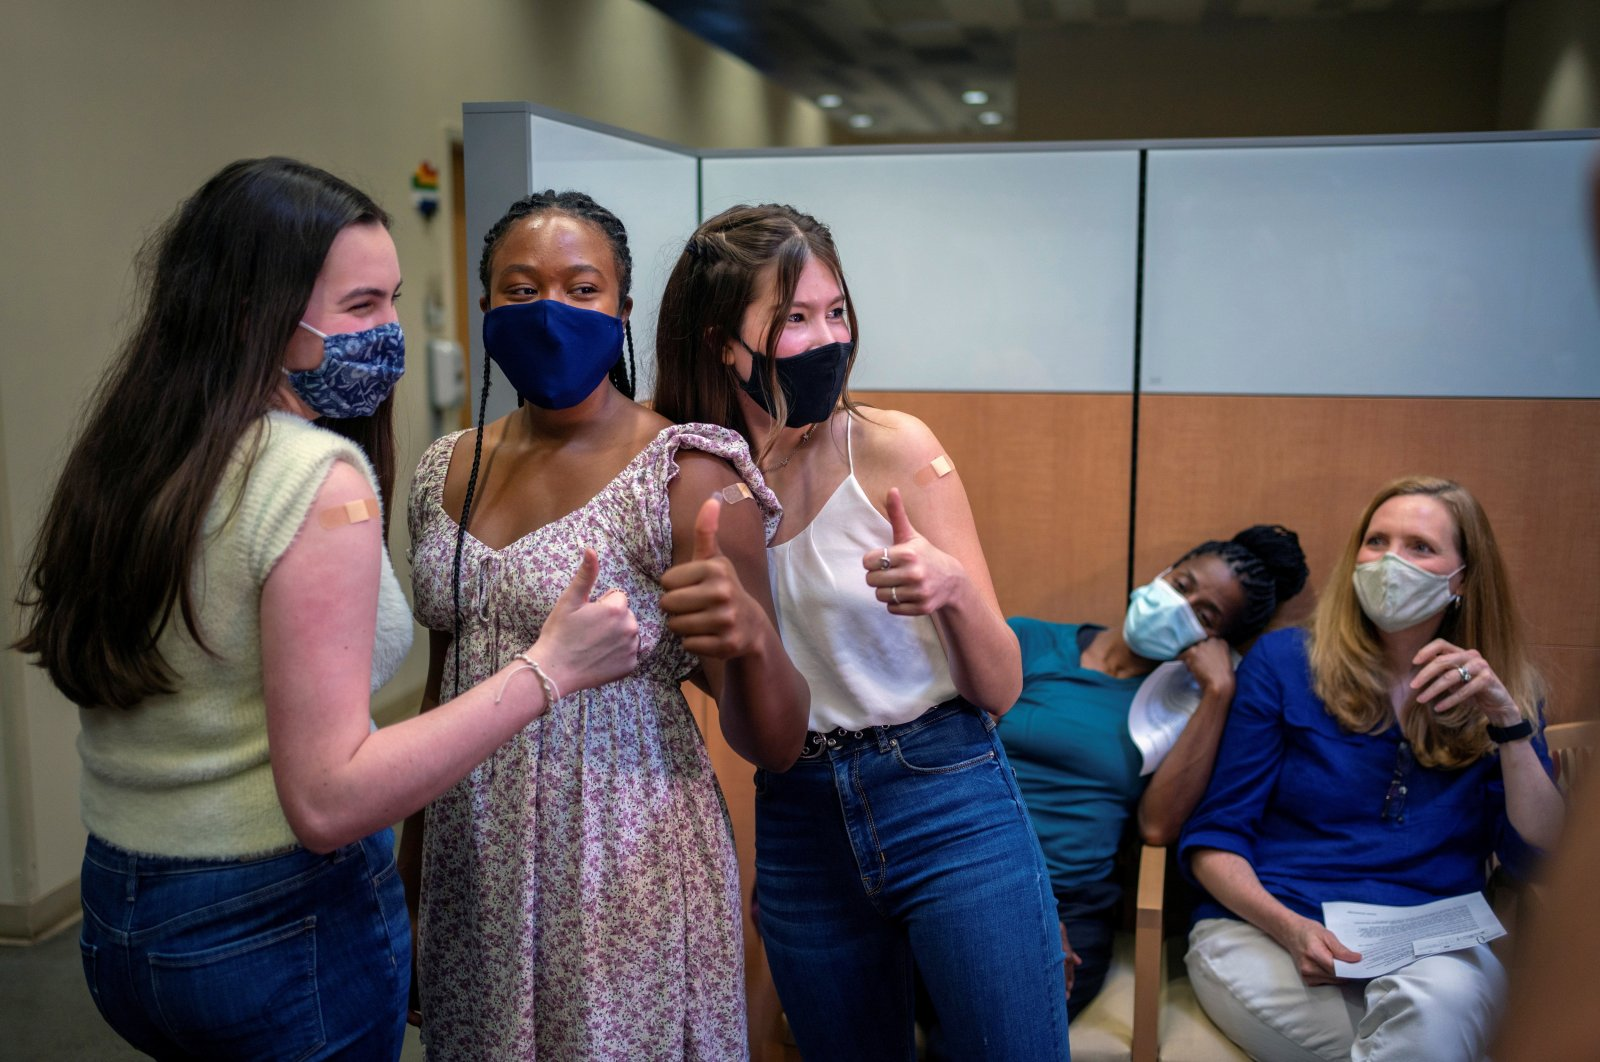 Lilly Gorman, 15 (L) Croix Hill, 15 and Ava Kreutziger, 14, give a thumbs up after the Isidore Newman School students received their first dose of the COVID-19 vaccine at the Ochsner Center for Primary Care and Wellness, New Orleans, Louisiana, U.S., May 13, 2021. (Reuters File Photo)